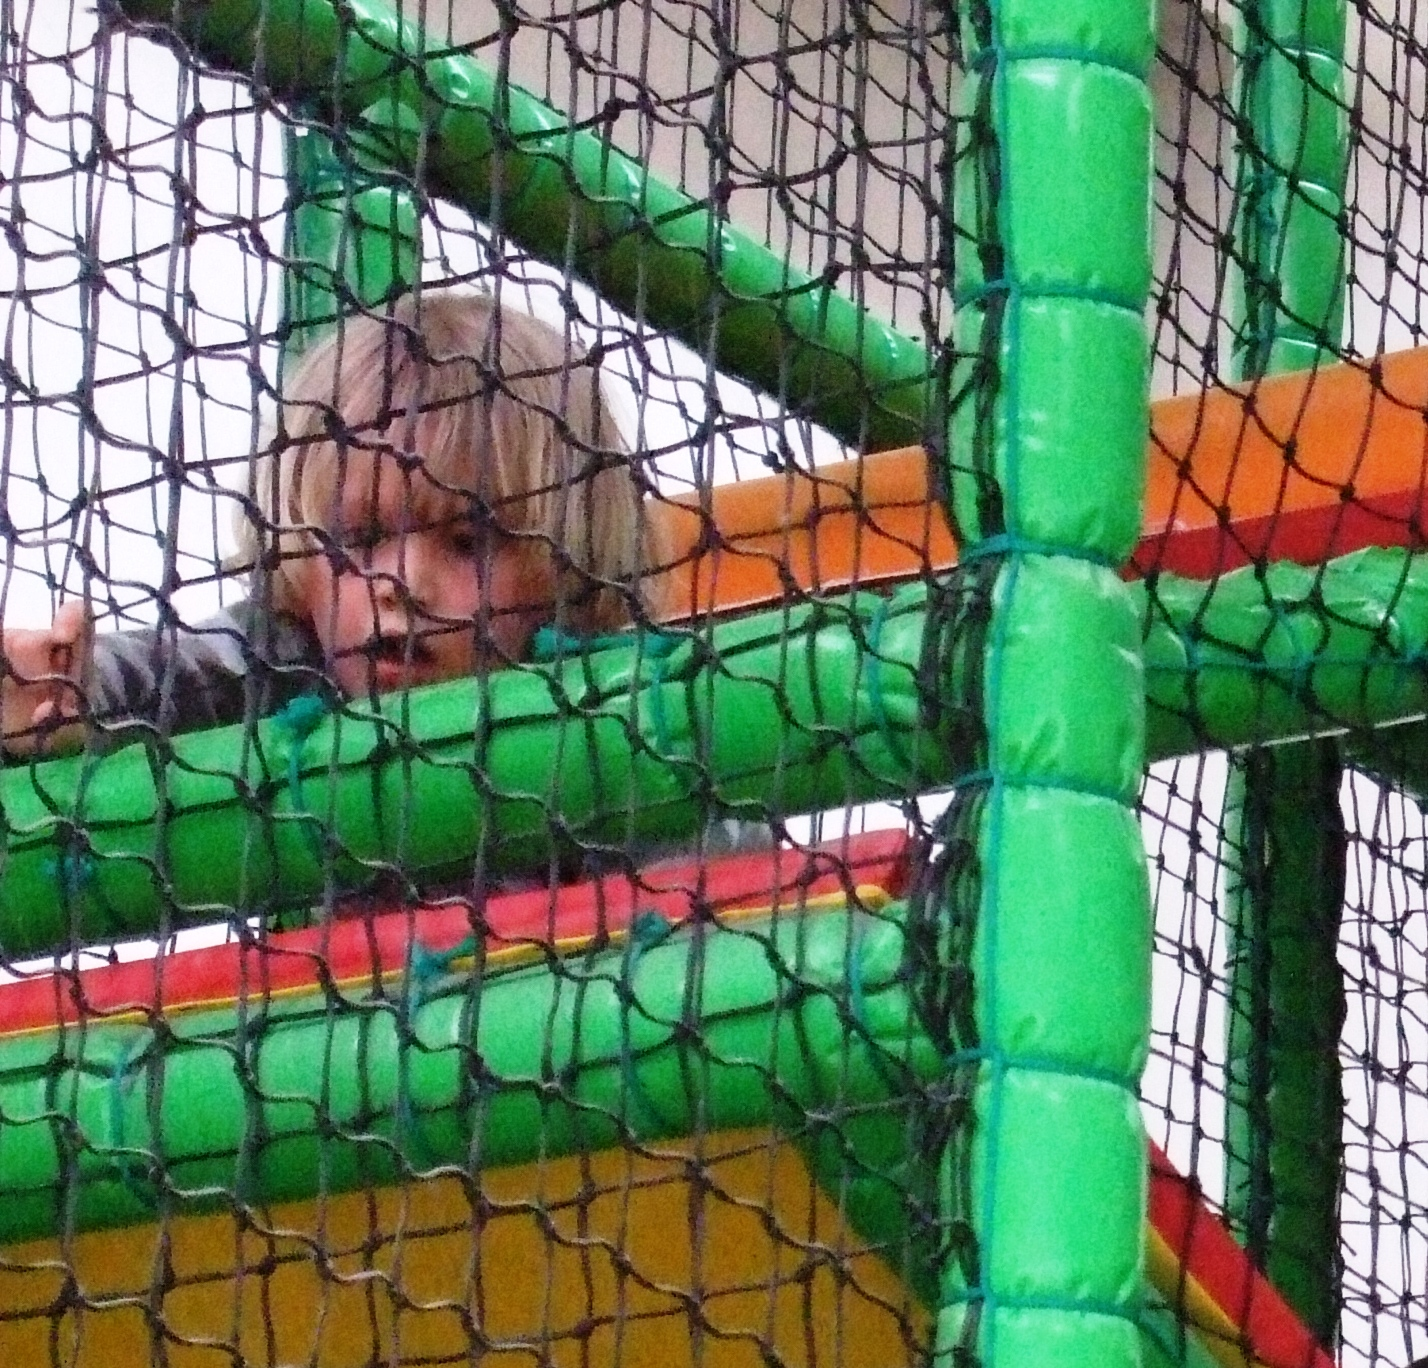 Handling soft play with an eczema child